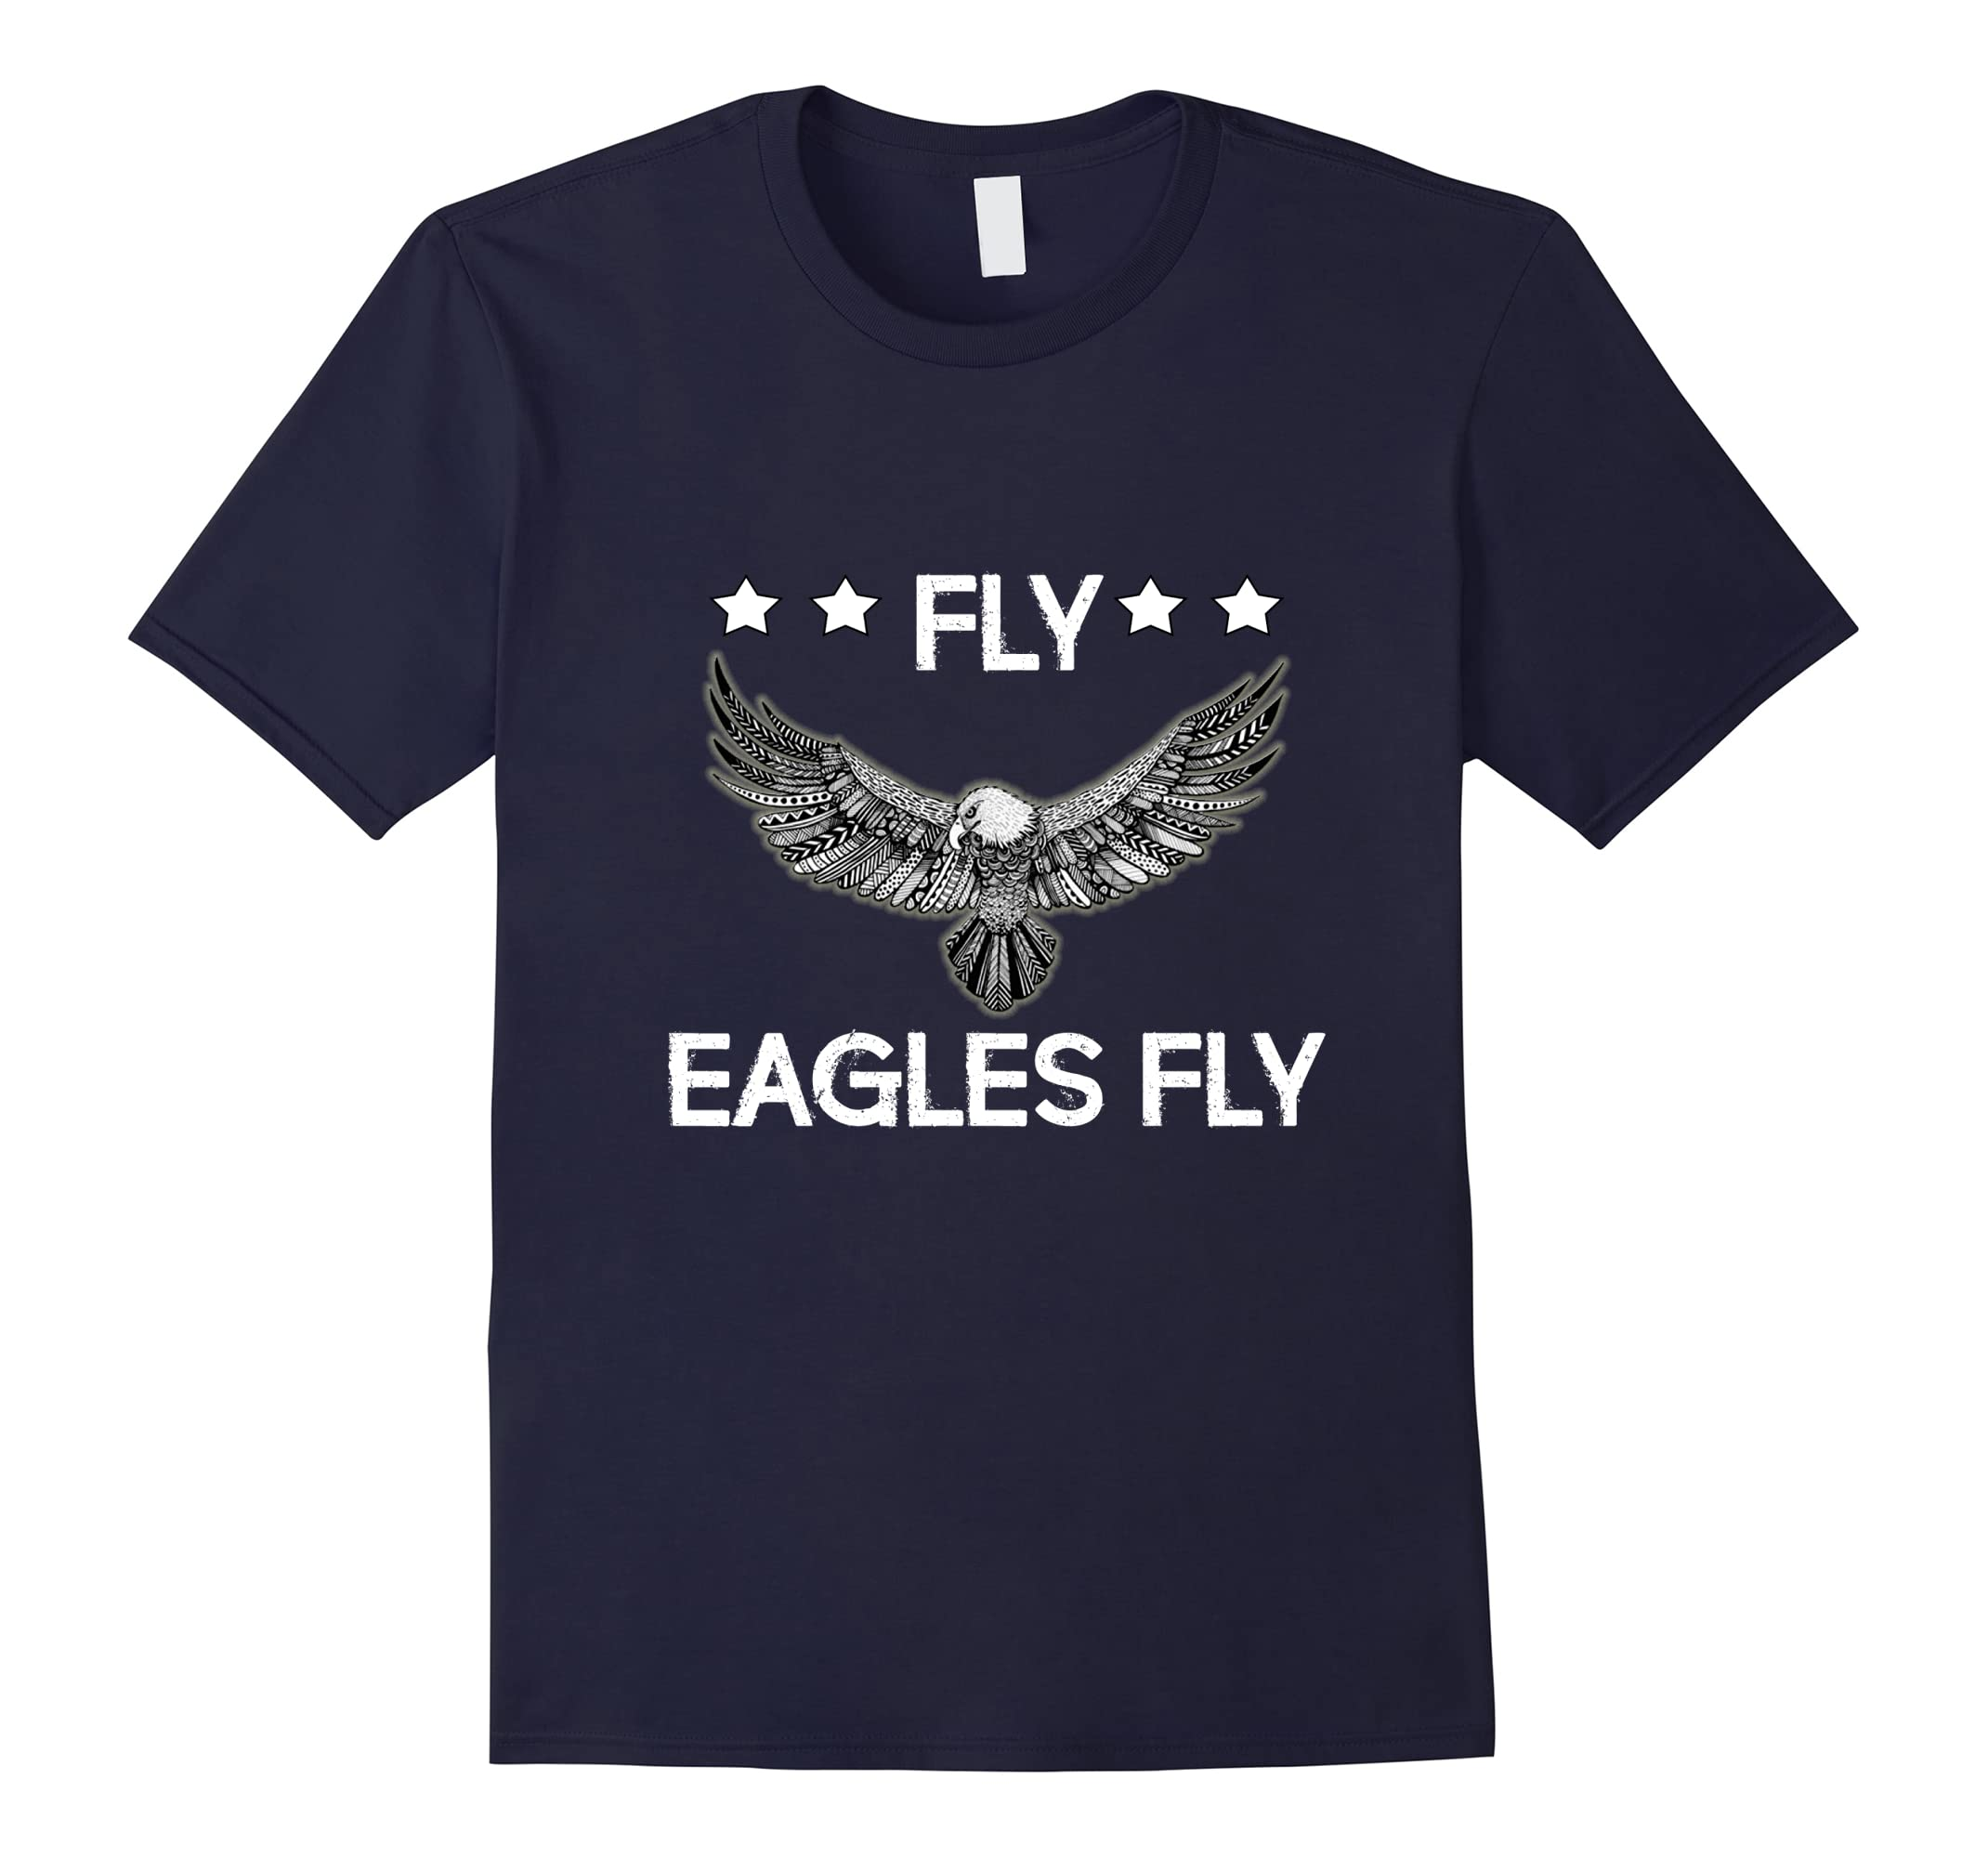 FLY EAGLES FLY - Flying Eagles Shirt - Great Gift Tee Tshirt-ah my shirt one gift